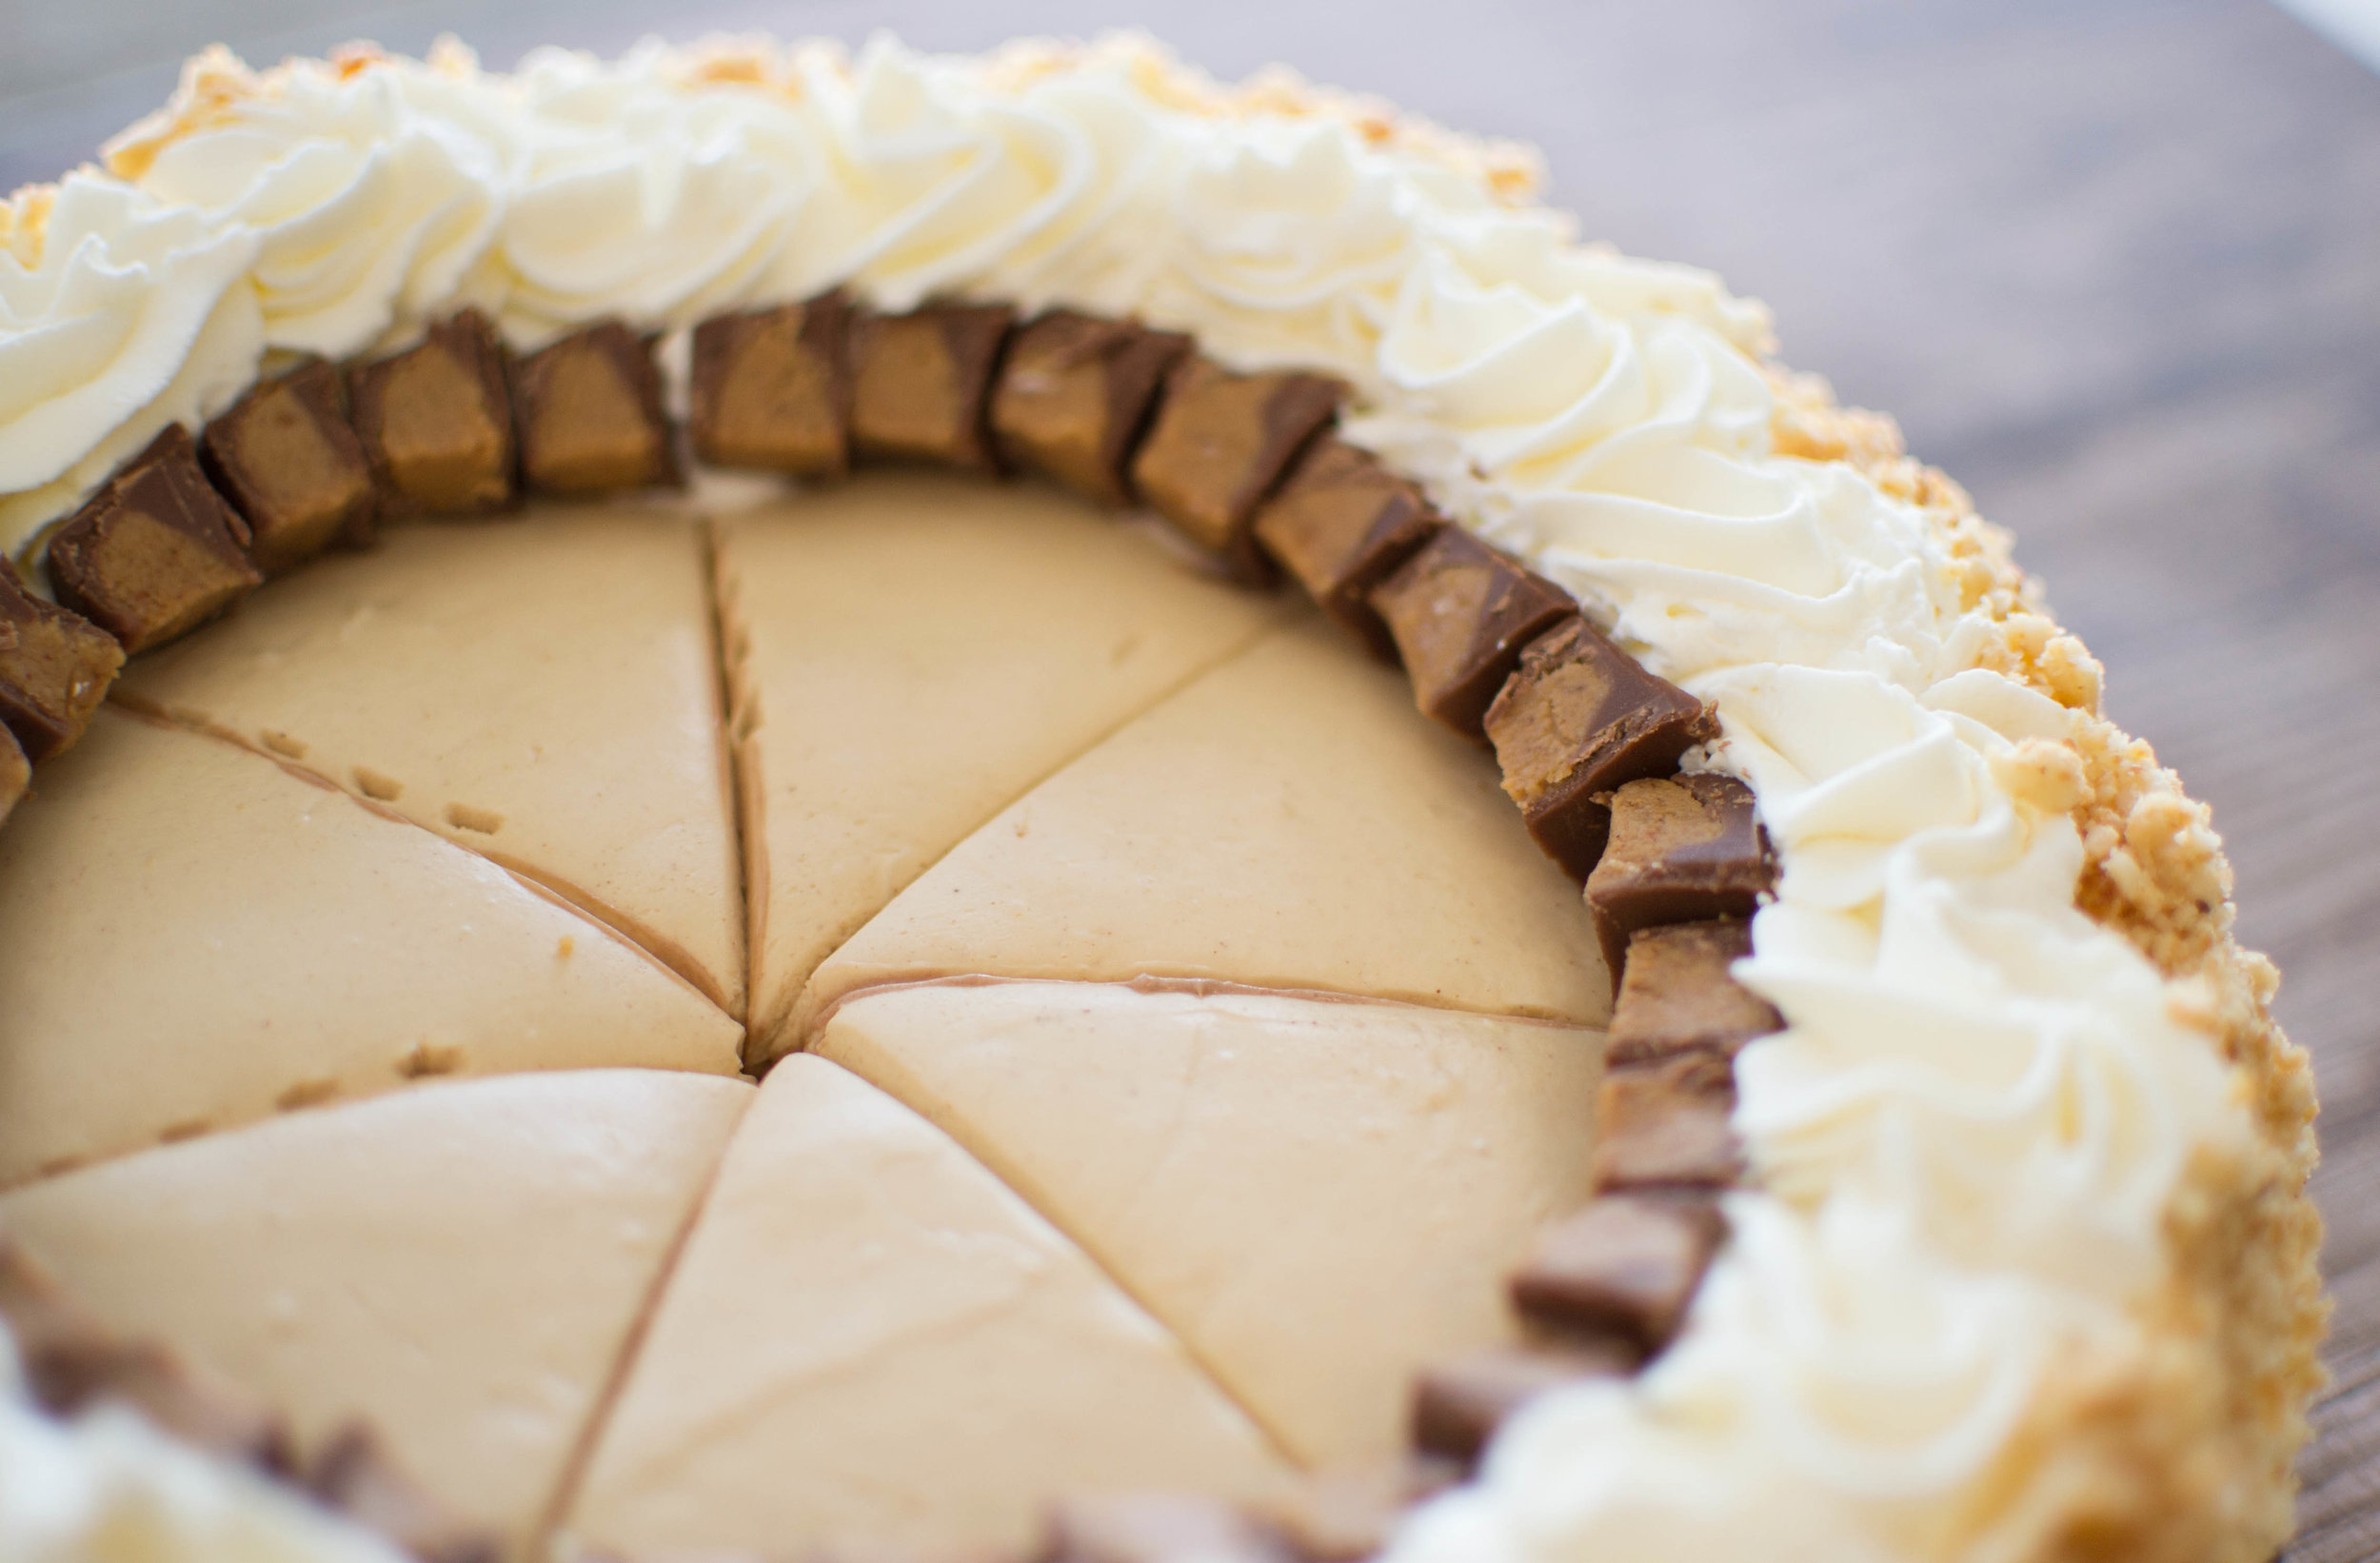 Peanut Butter Pie Orlando Food Photography.jpg